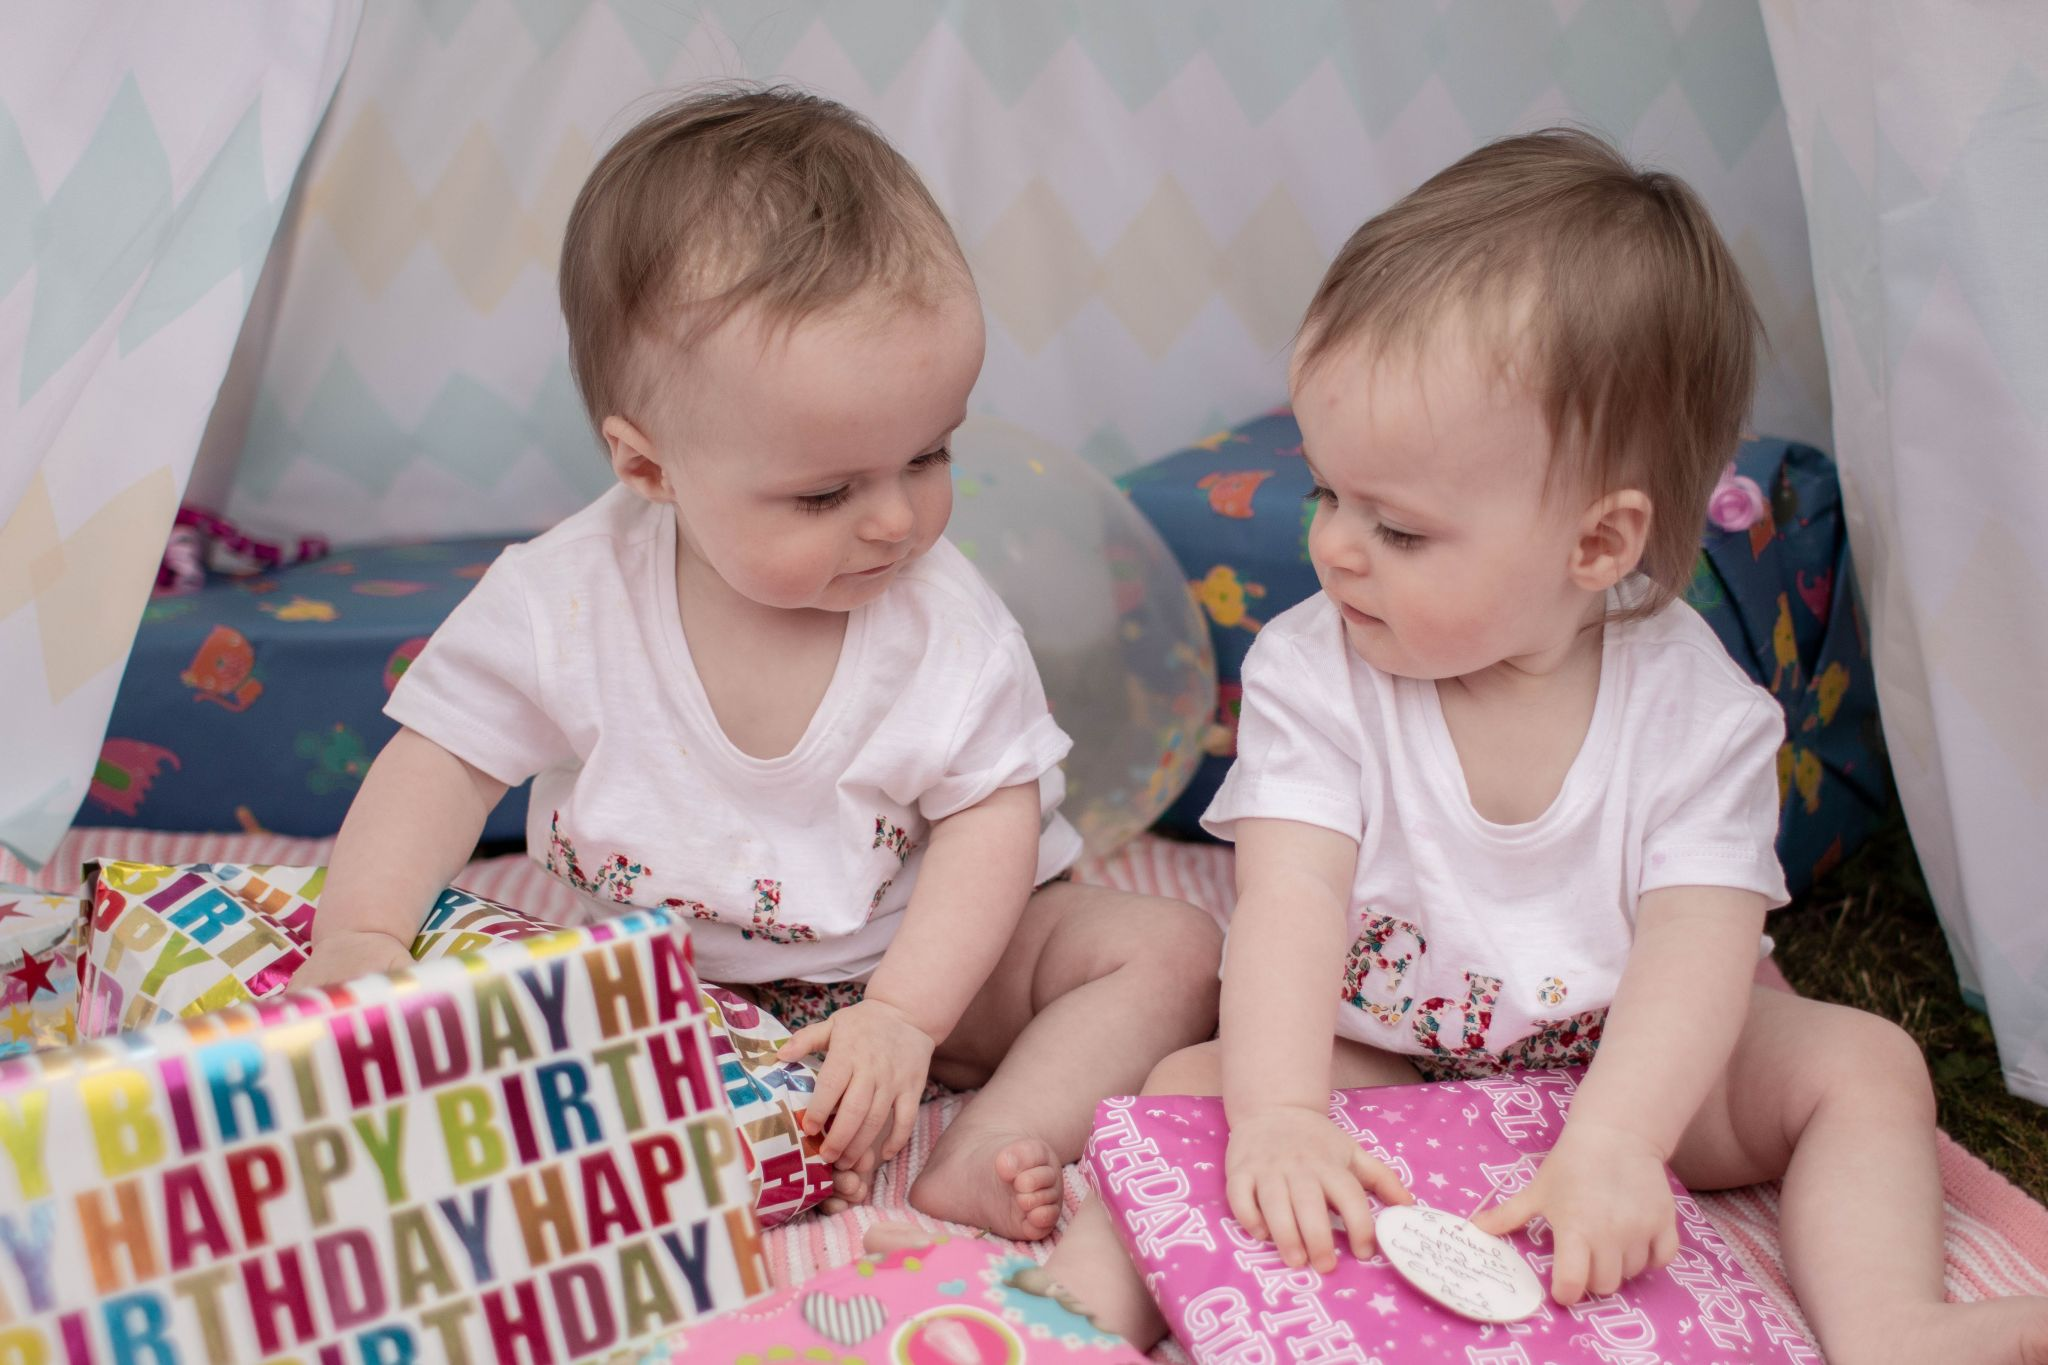 hannah layford child photography shoot portraits birthday party twins babies